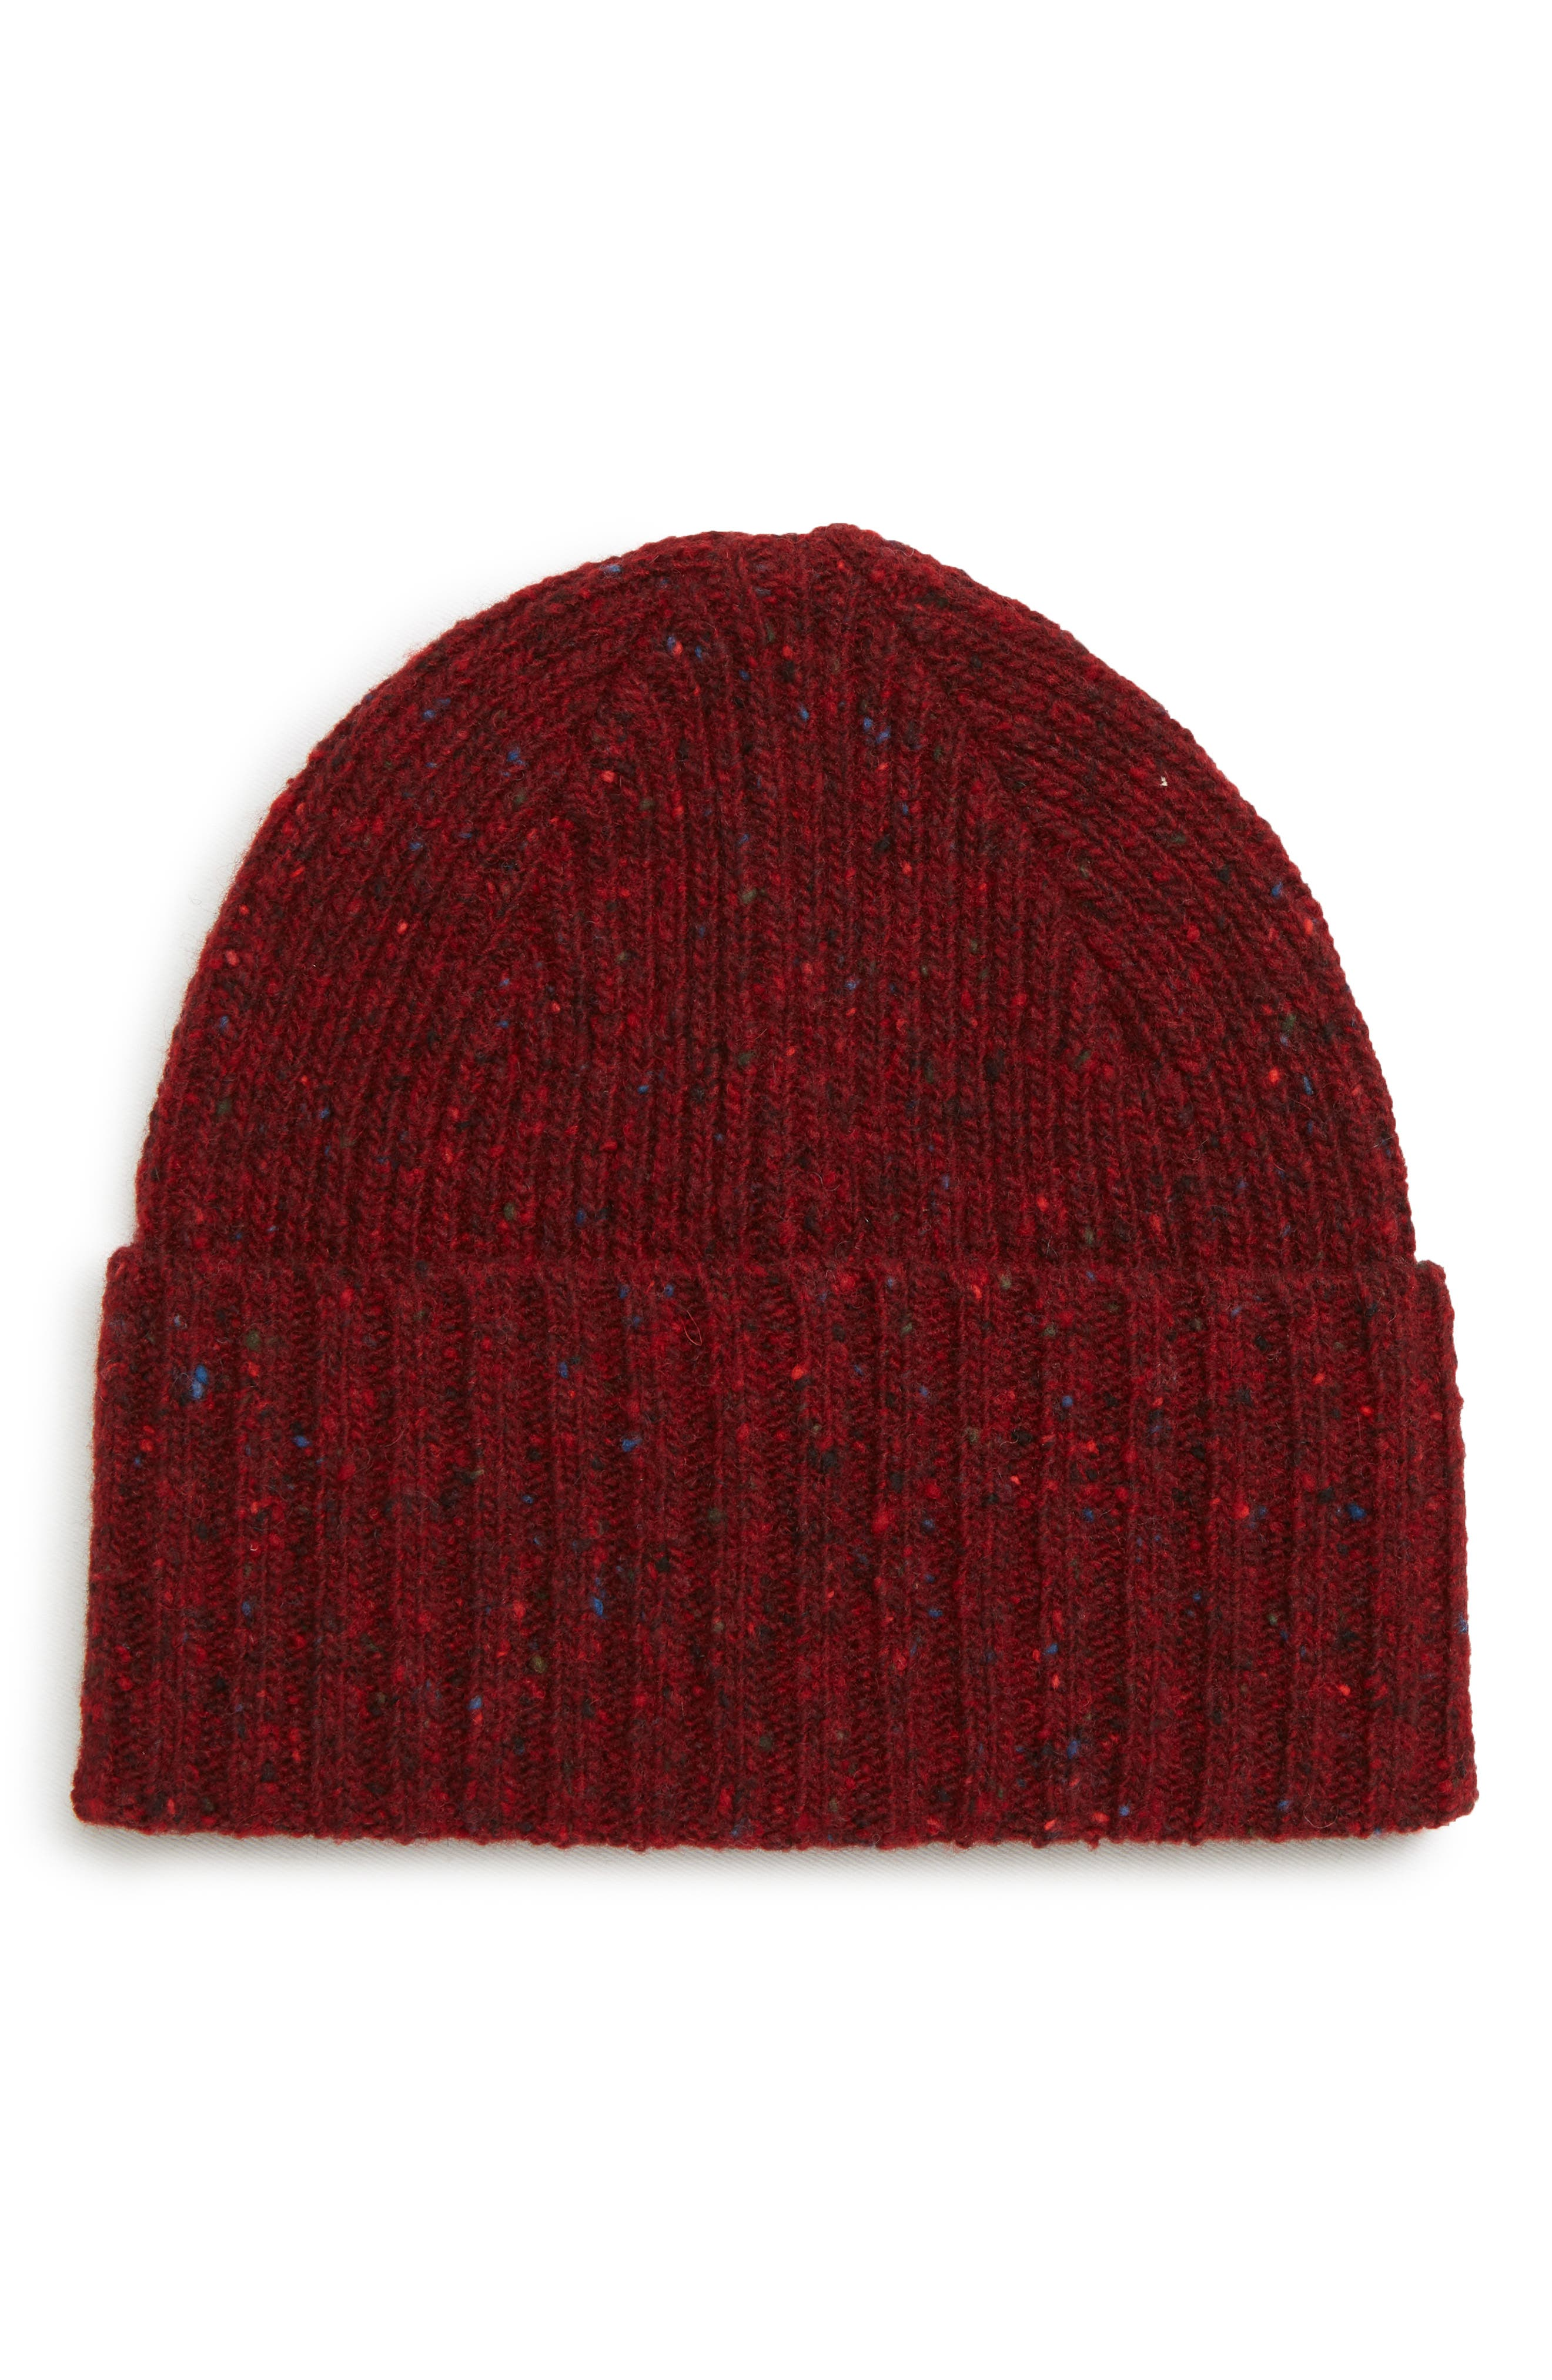 DRAKE'S Drakes Donegal Wool Beanie - Red